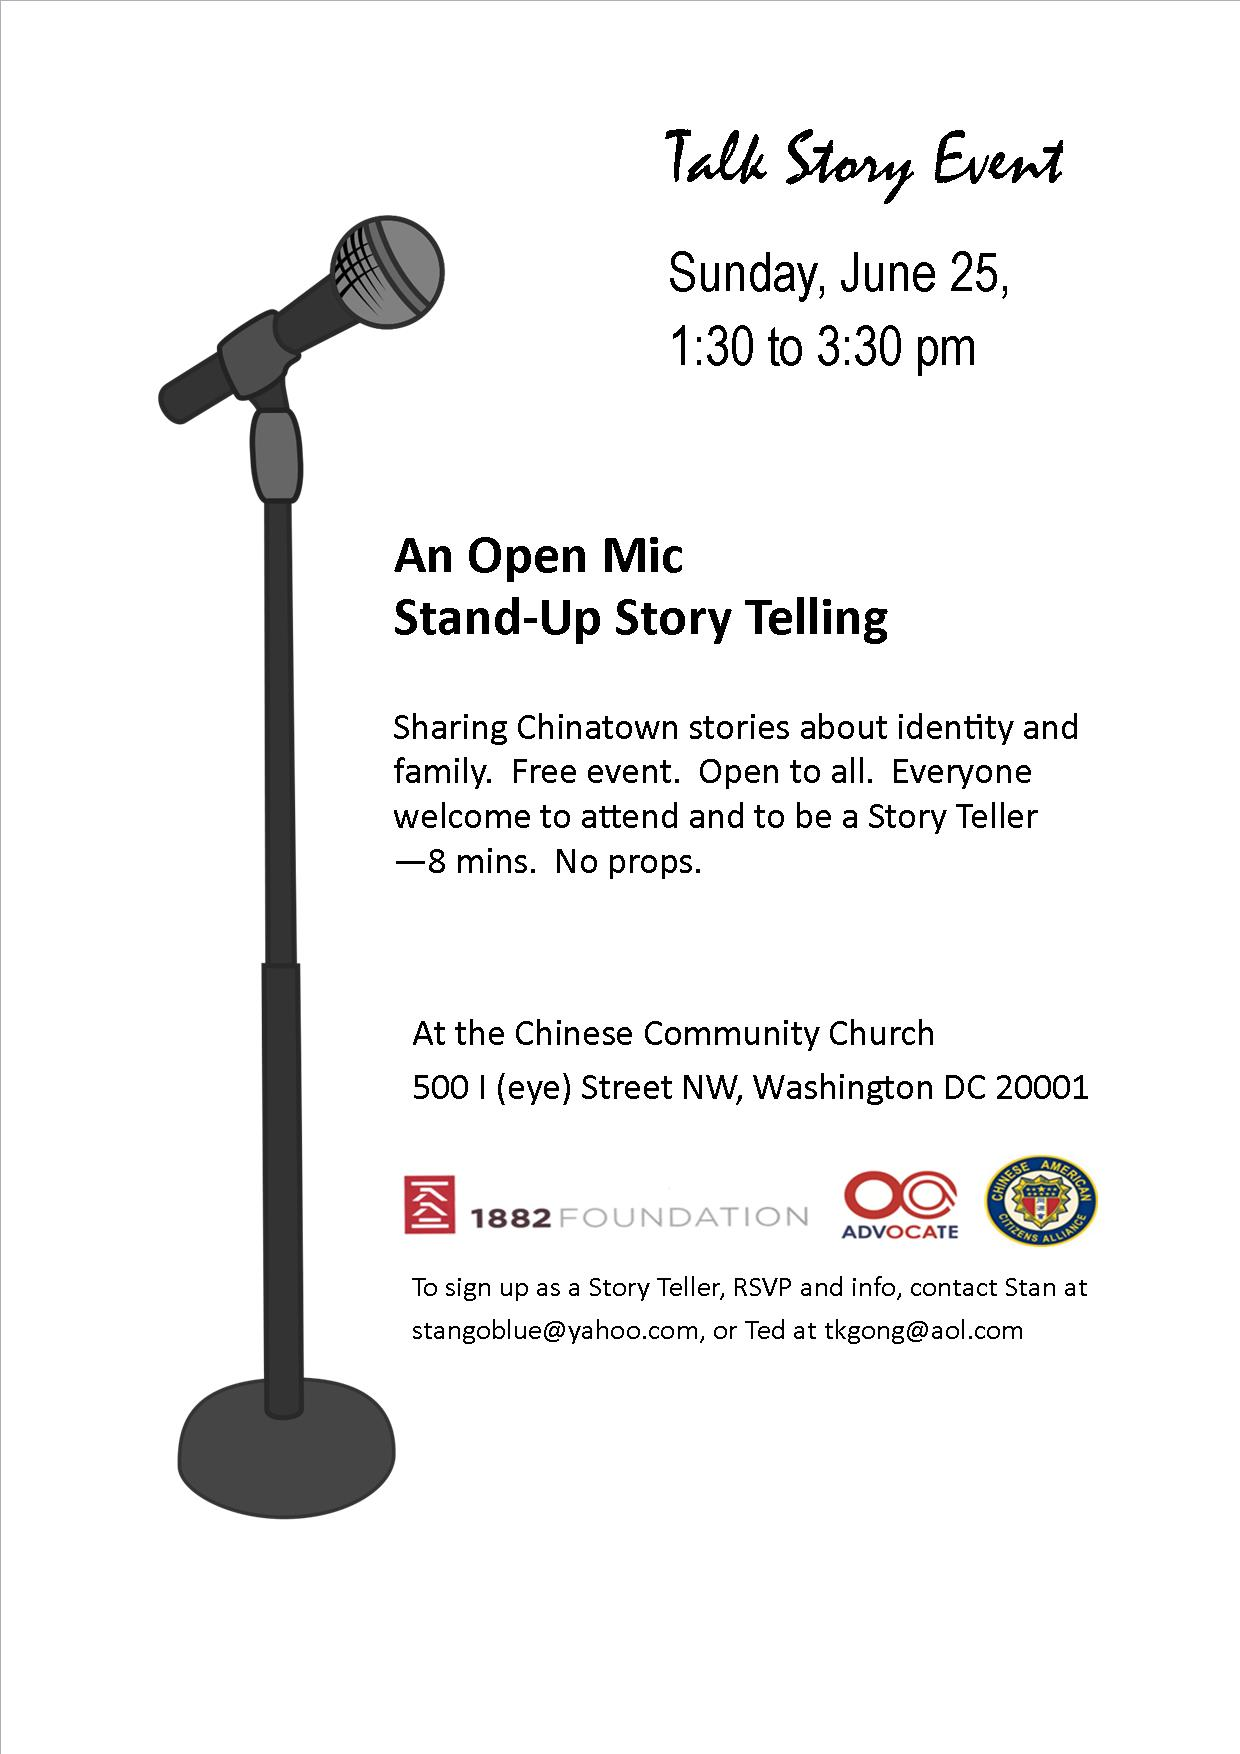 June Talk Story Event Open Mic And Stand Up Story Telling on Digital Story Telling Lesson Plan